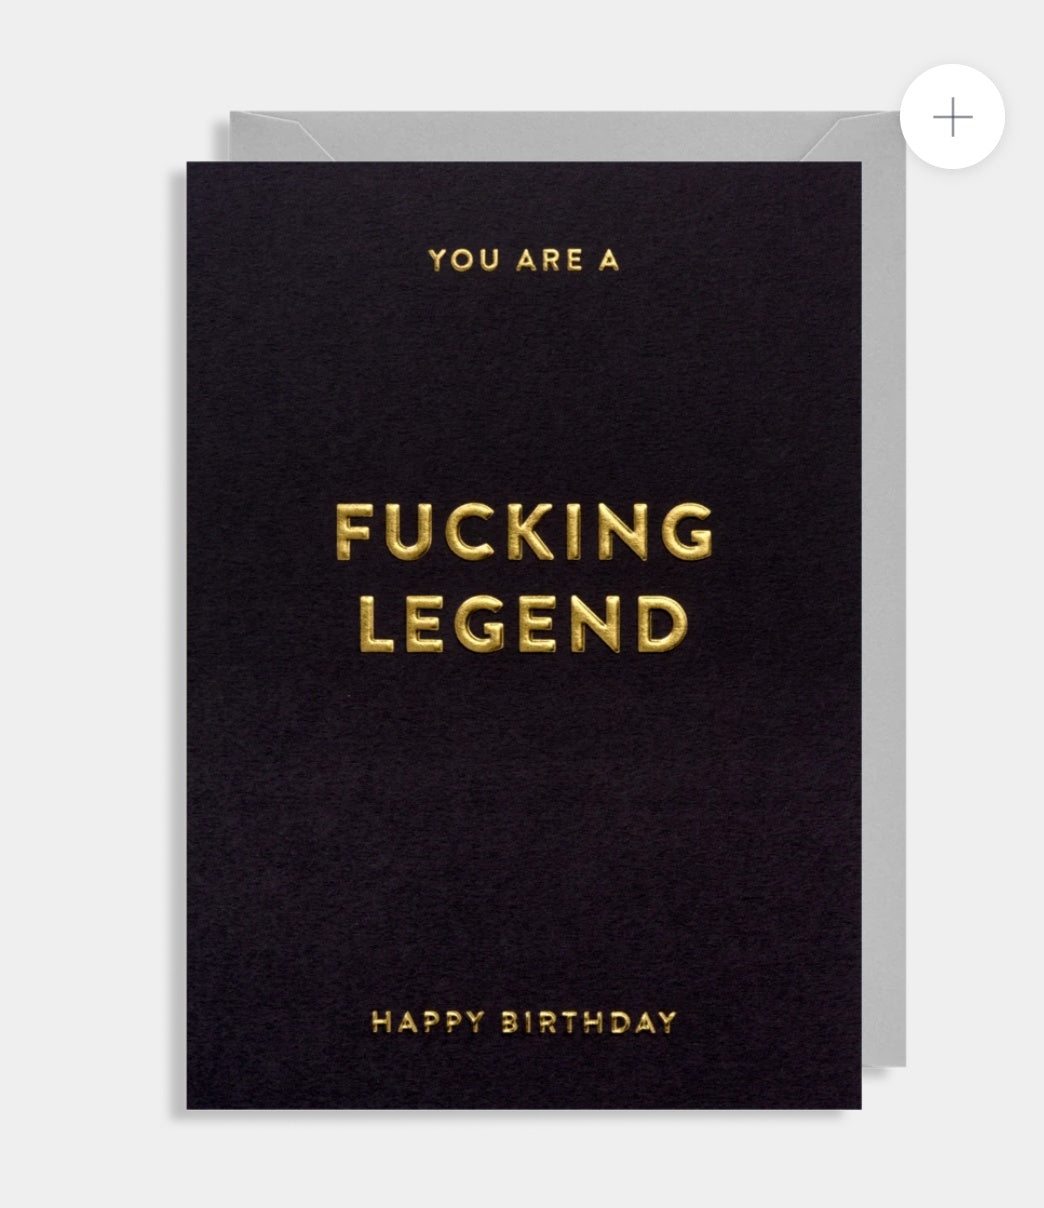 You Are A F**king Legend - Happy Birthday Card